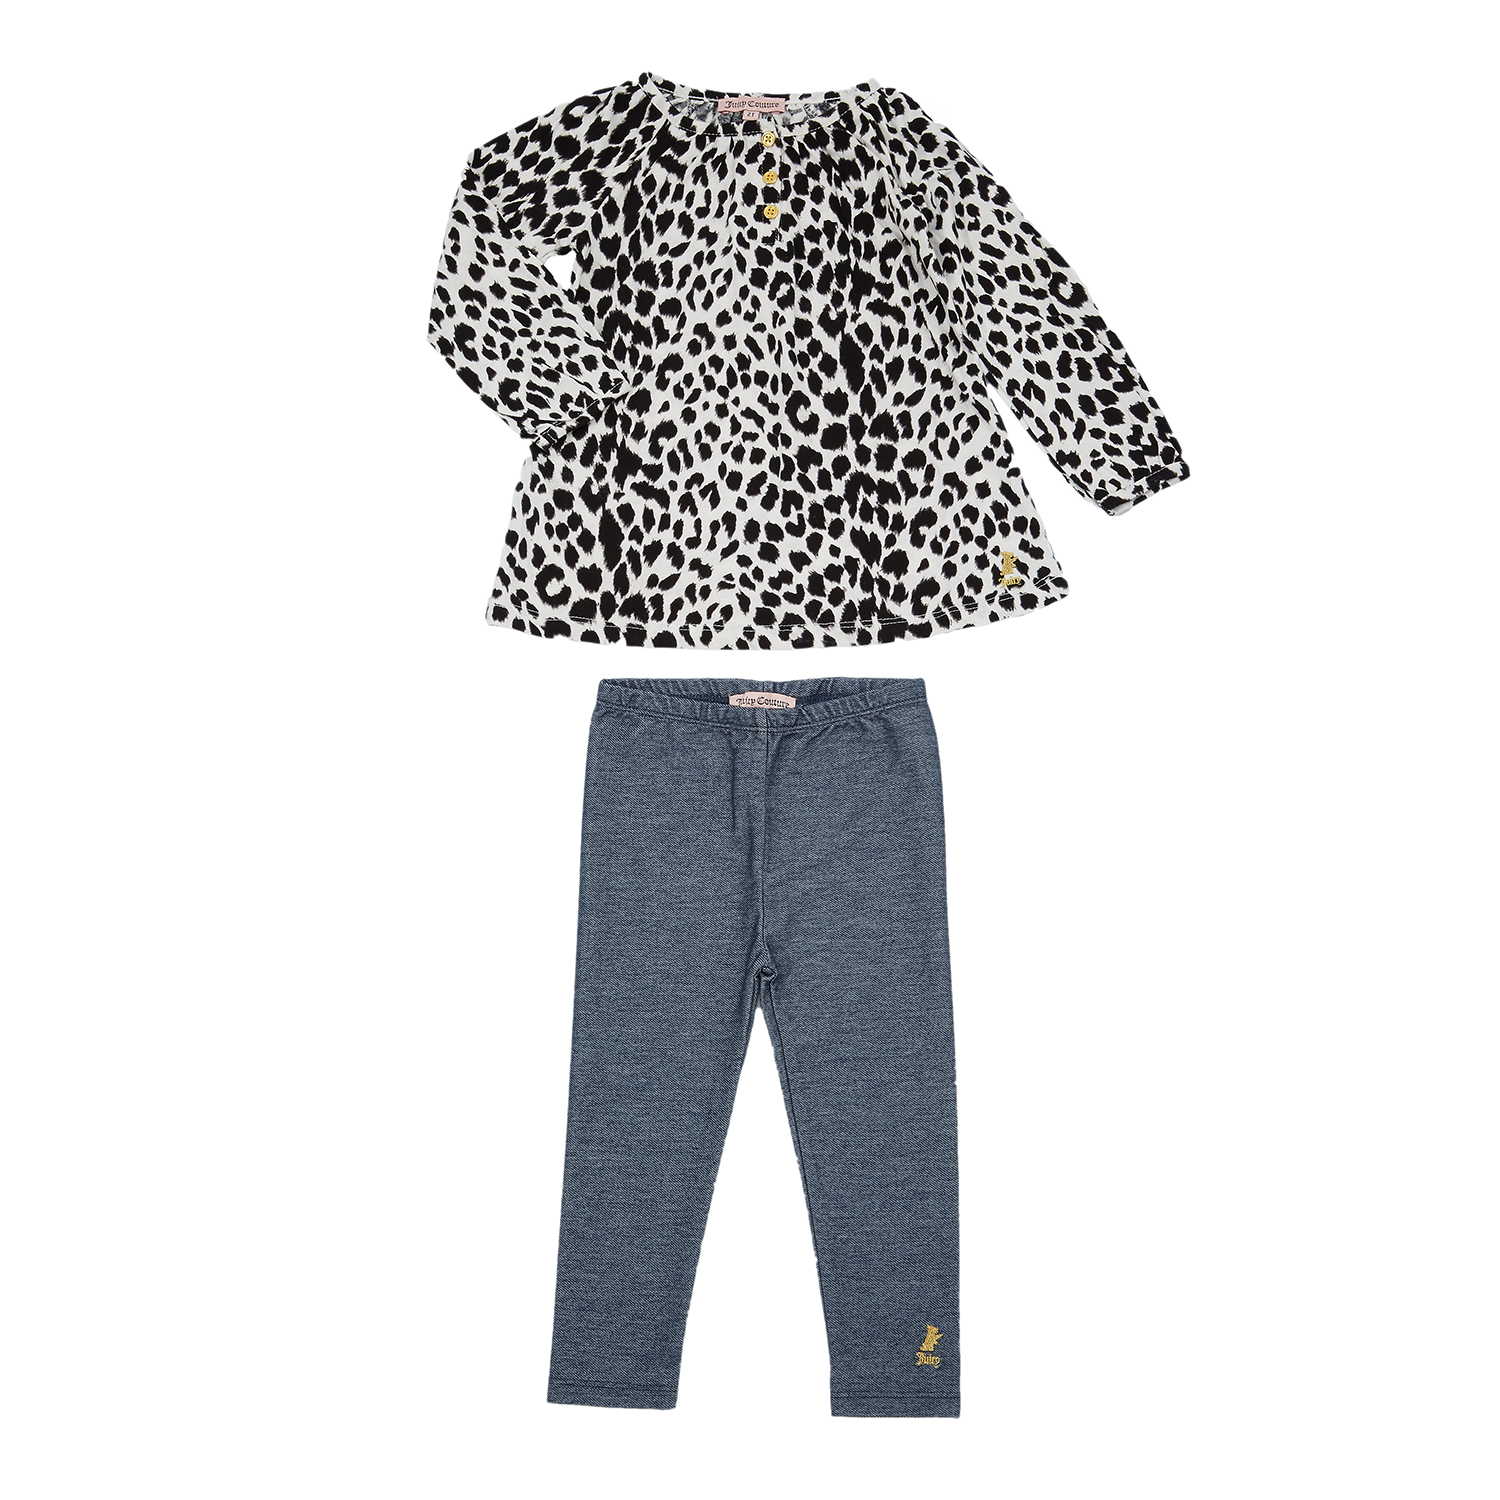 d2c73266be3 JUICY COUTURE KIDS - Βρεφικό σετ Juicy Couture γκρι